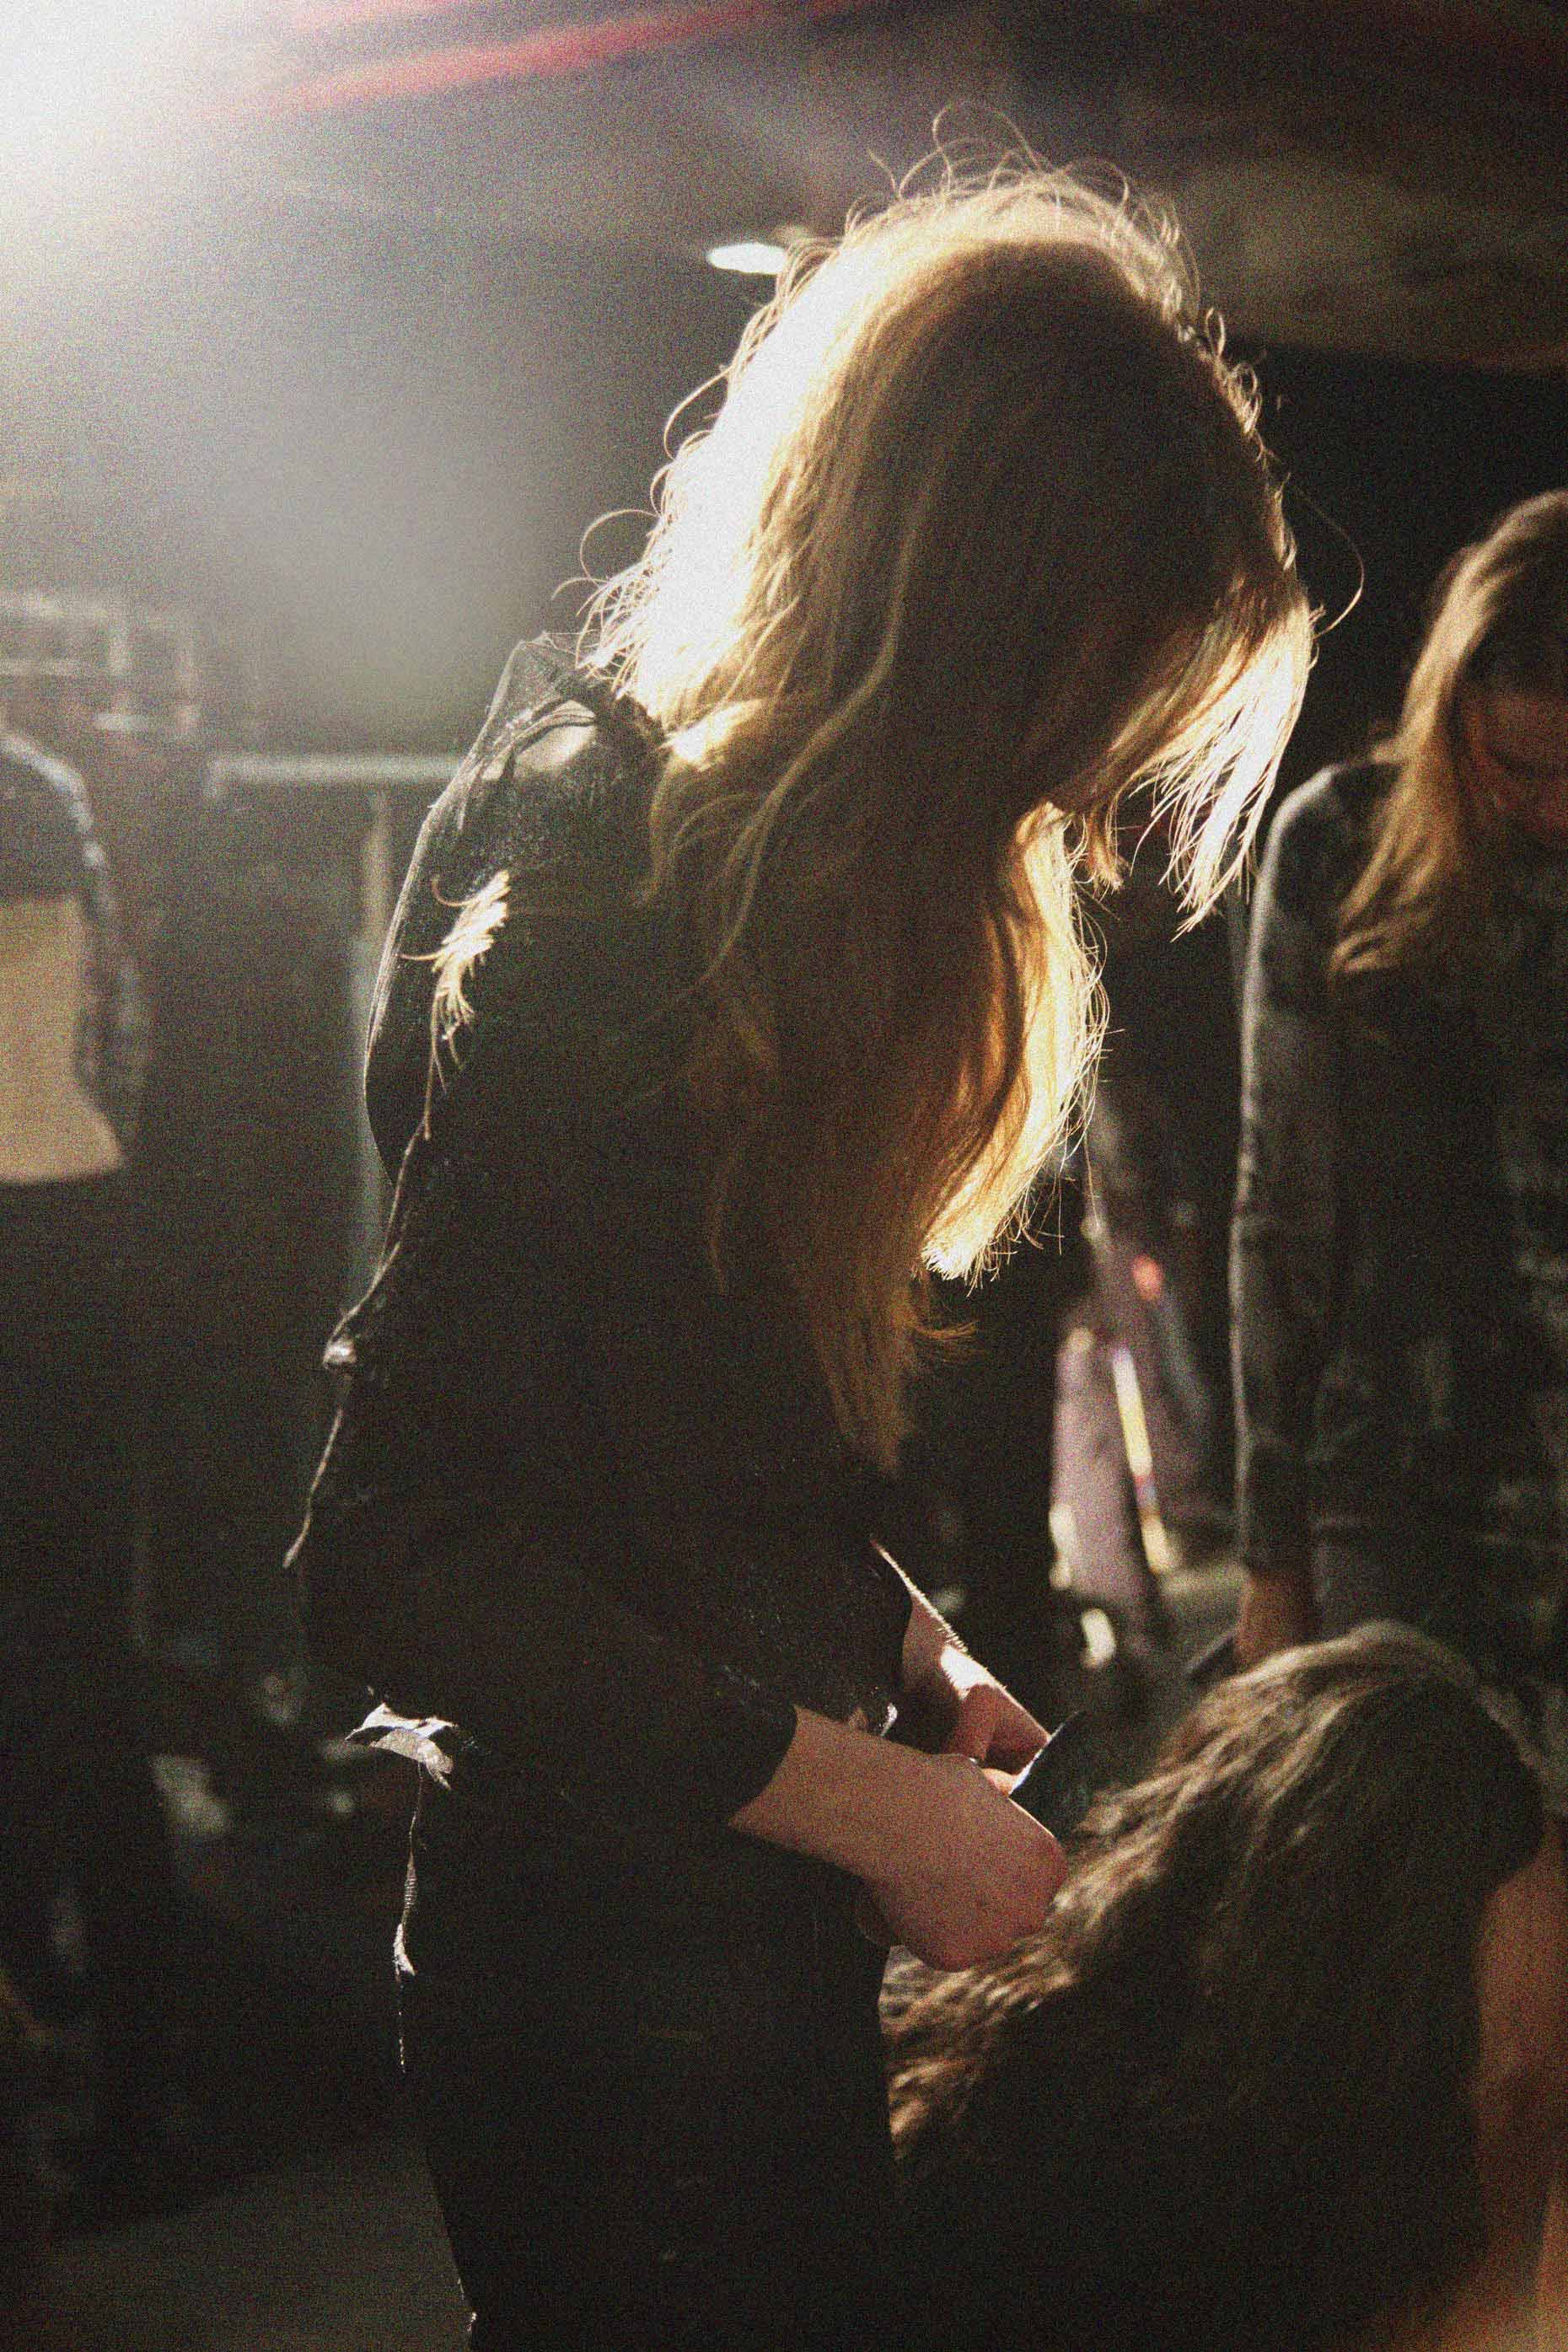 8-Kelly-Stuart-backstage-Diesel-FW10-18-b